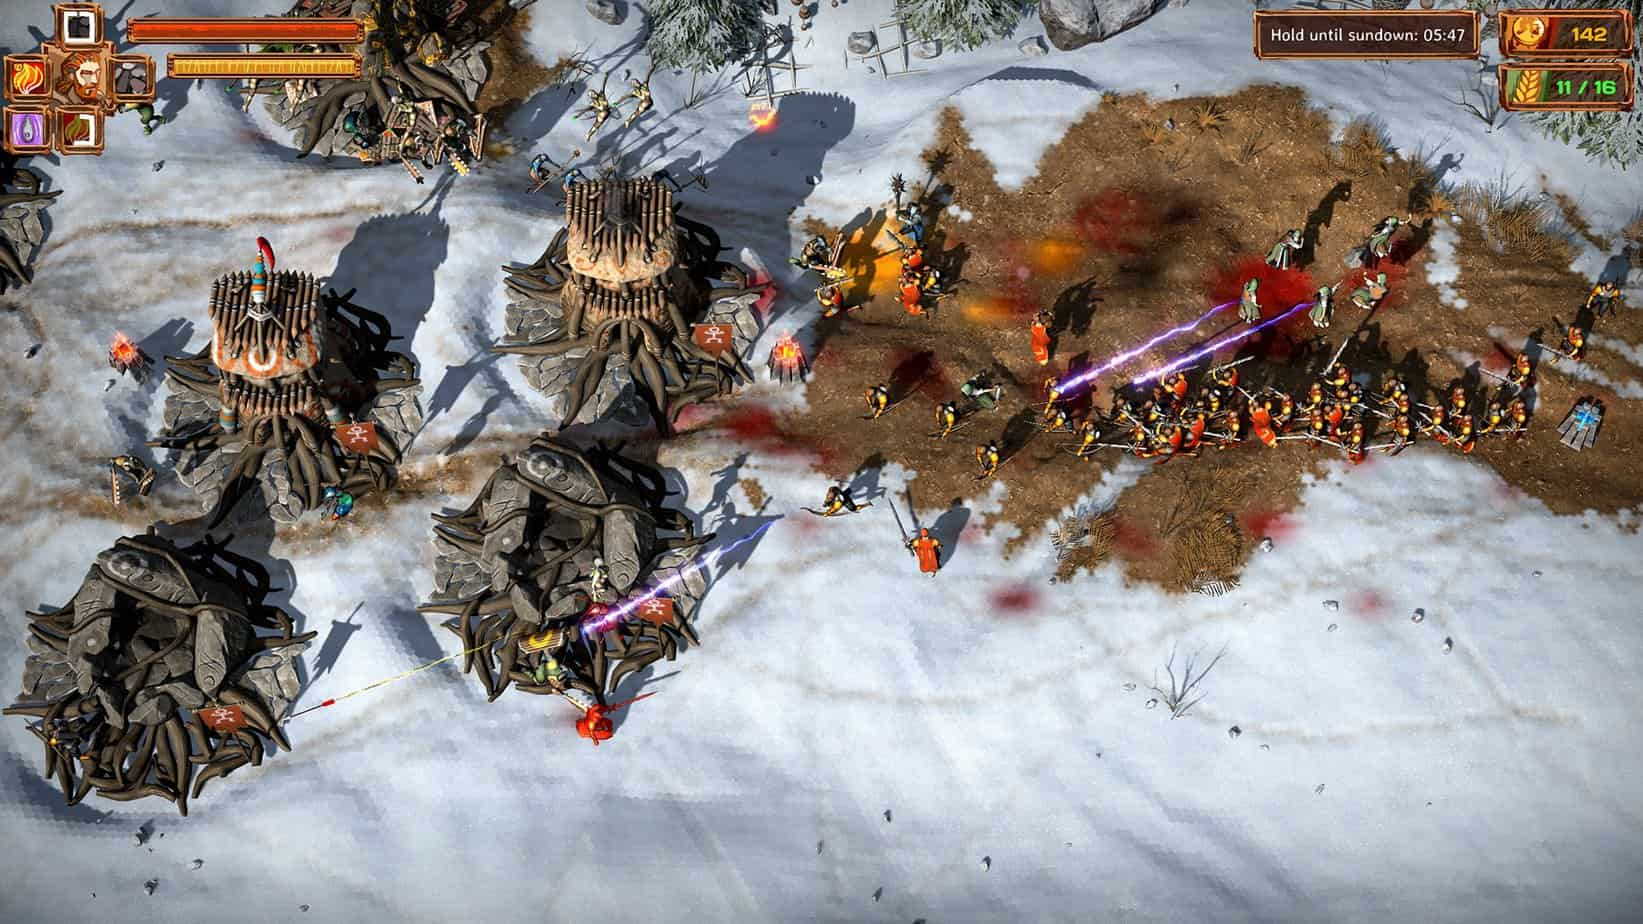 Lornsword Winter Chronicle Review by FanBoyDestroy